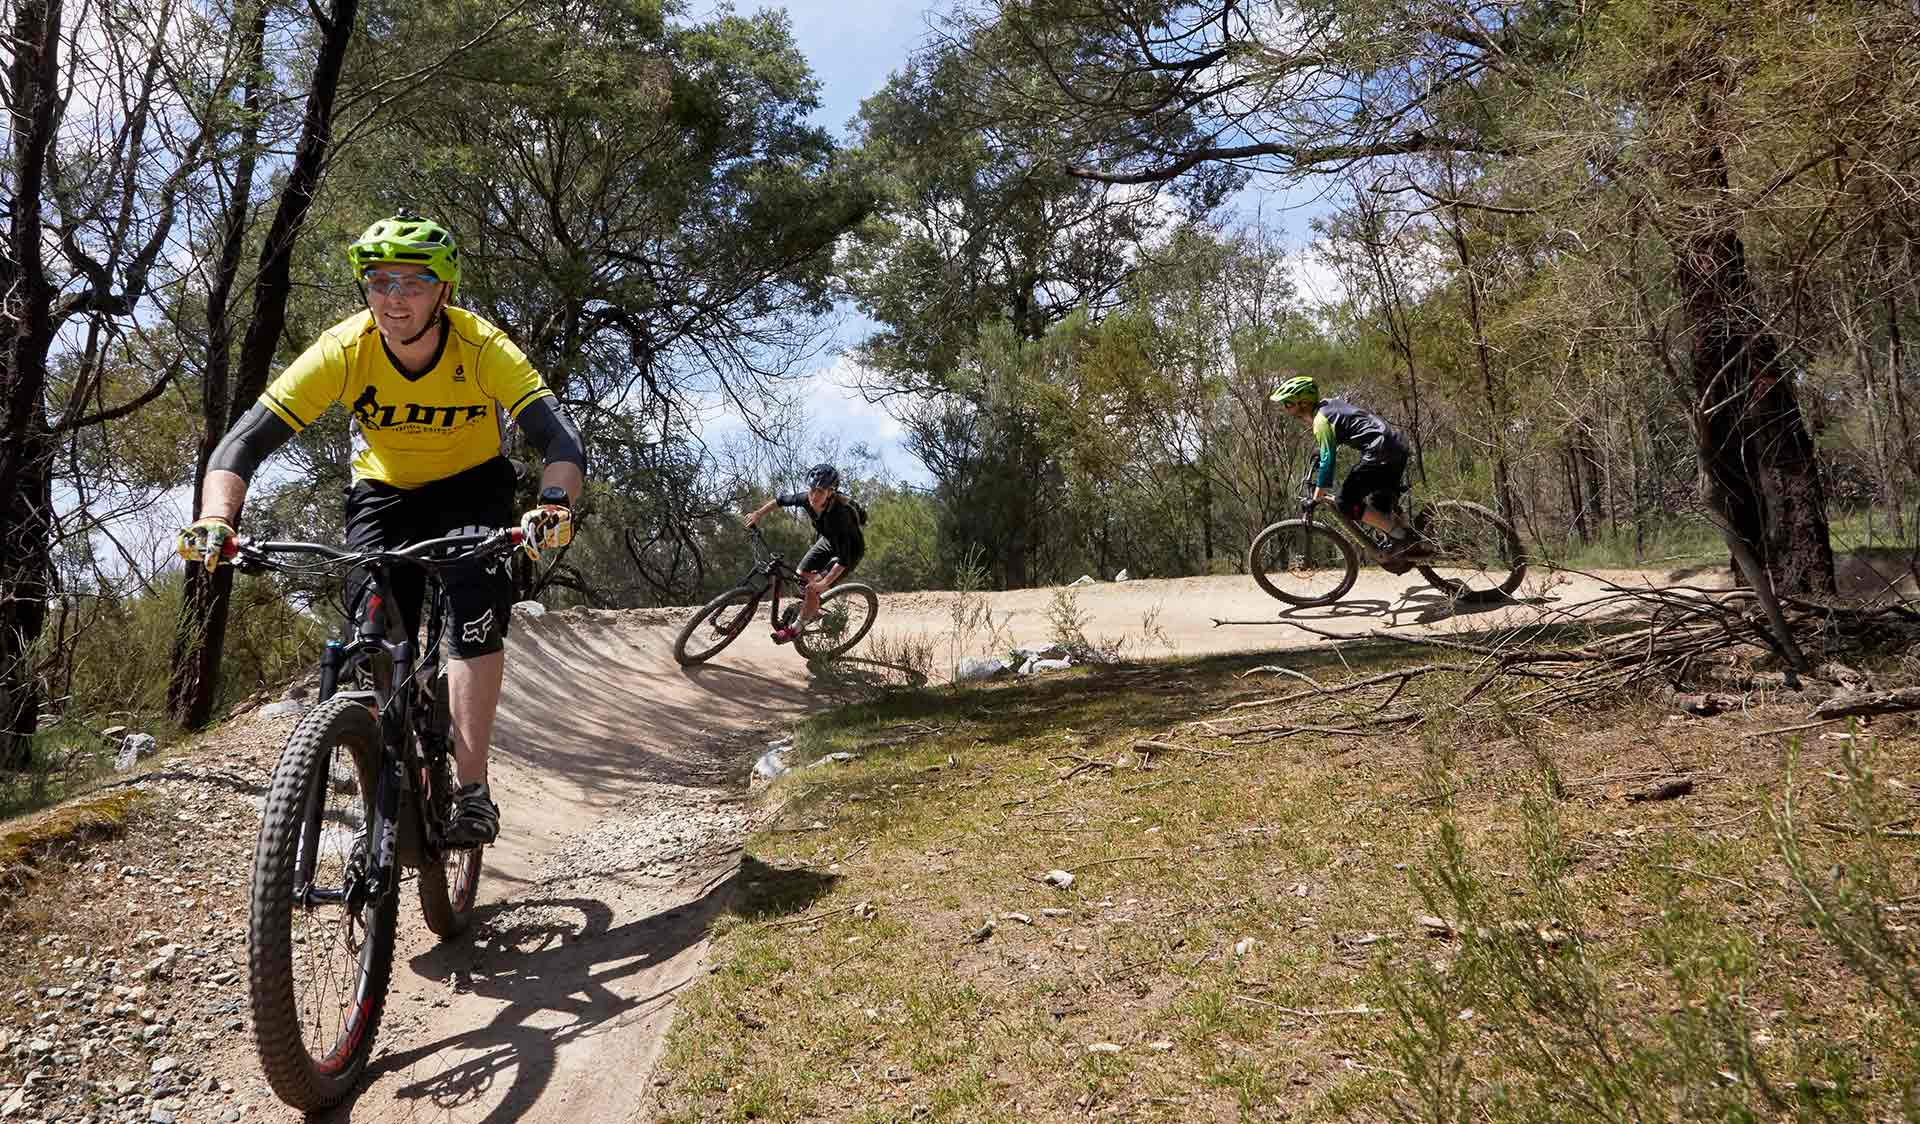 Three mountain bikers turn left through a berm.